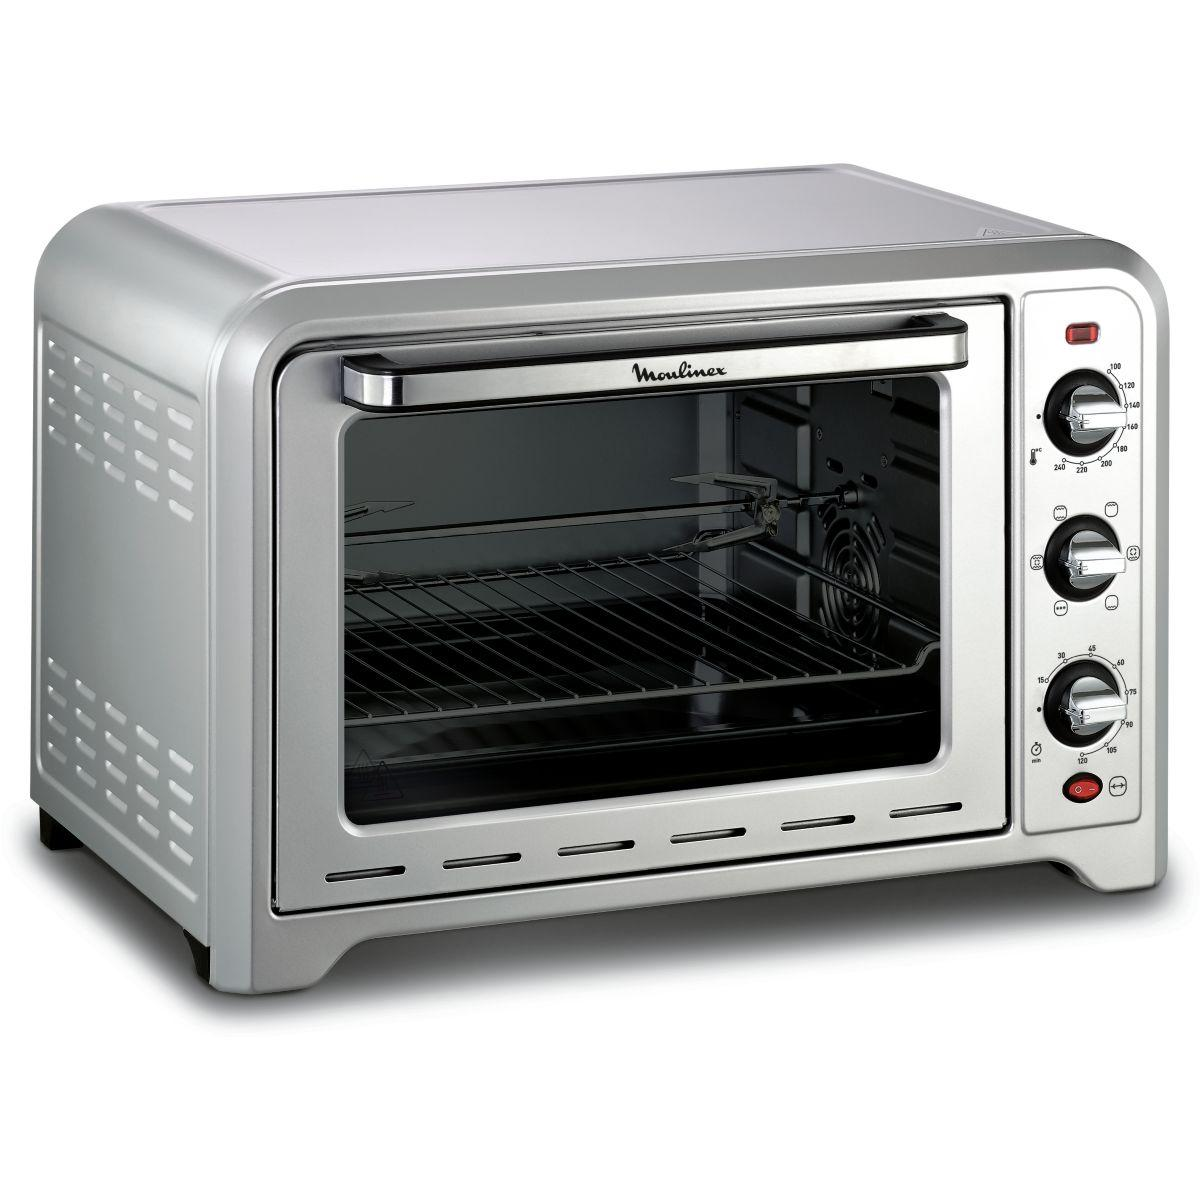 Four compact moulinex ox485e10 - 15% de remise immédiate avec le code : cool15 (photo)